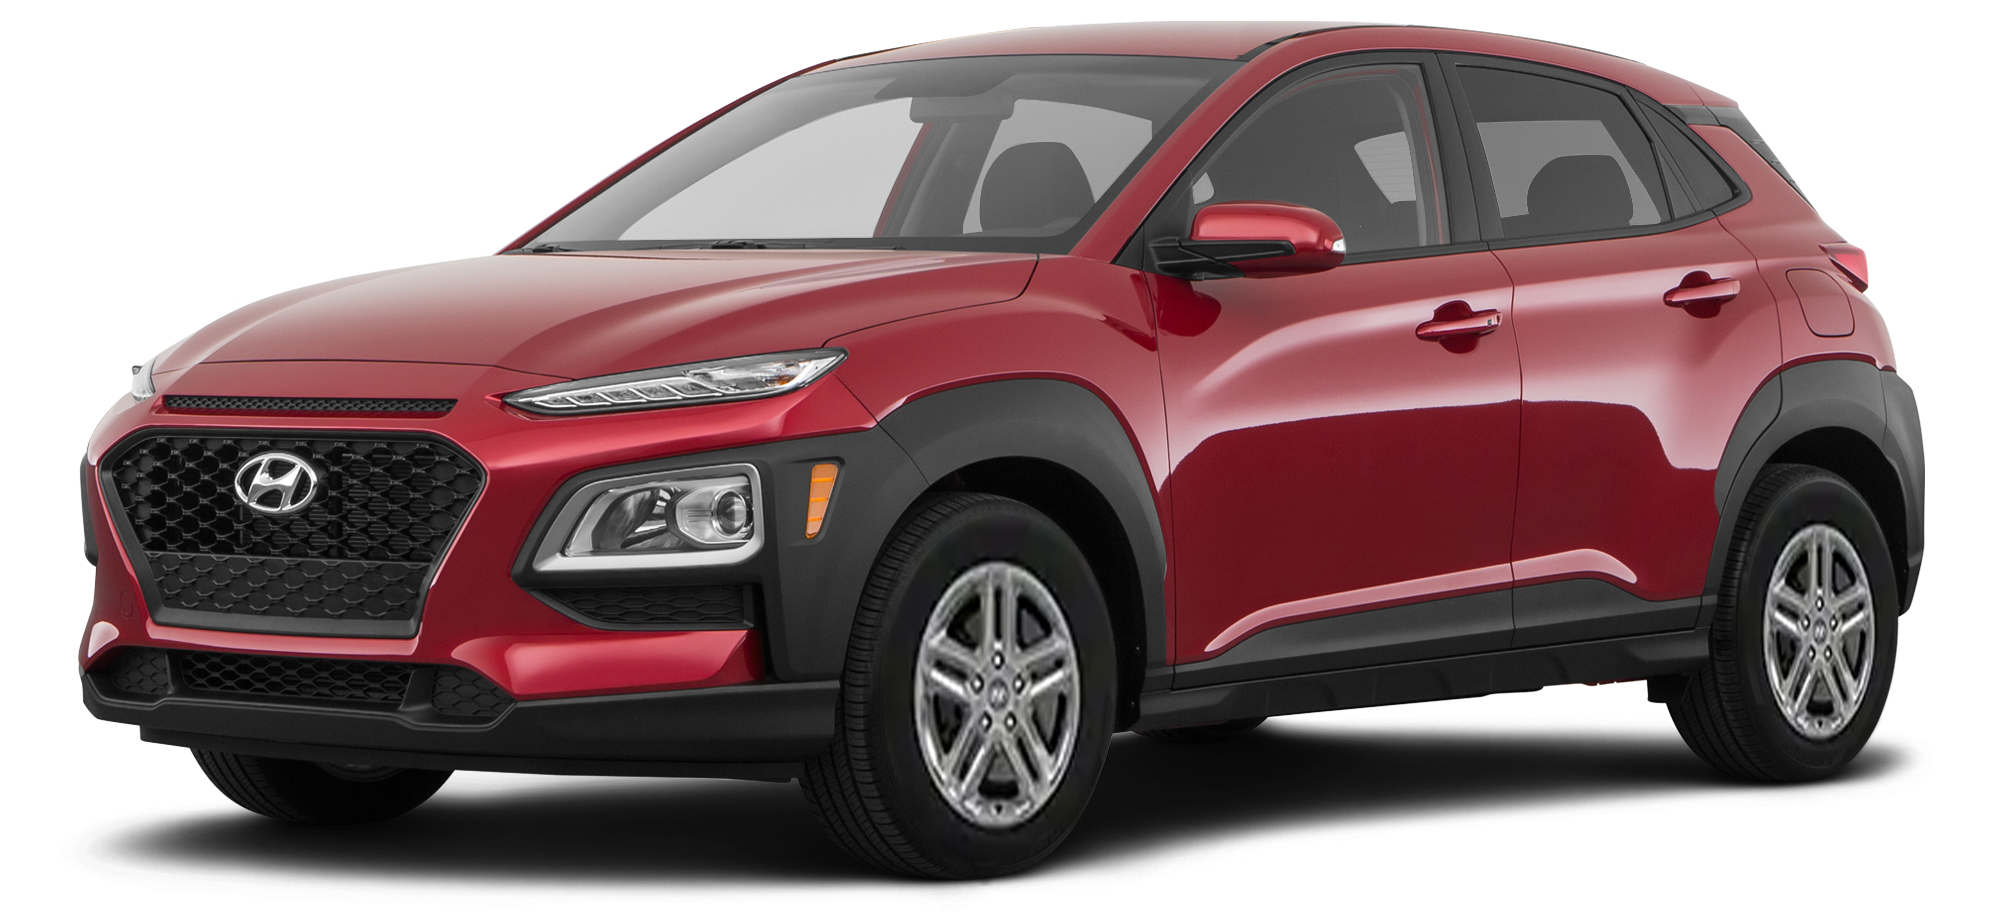 2019 hyundai kona incentives specials offers in las vegas nv. Black Bedroom Furniture Sets. Home Design Ideas